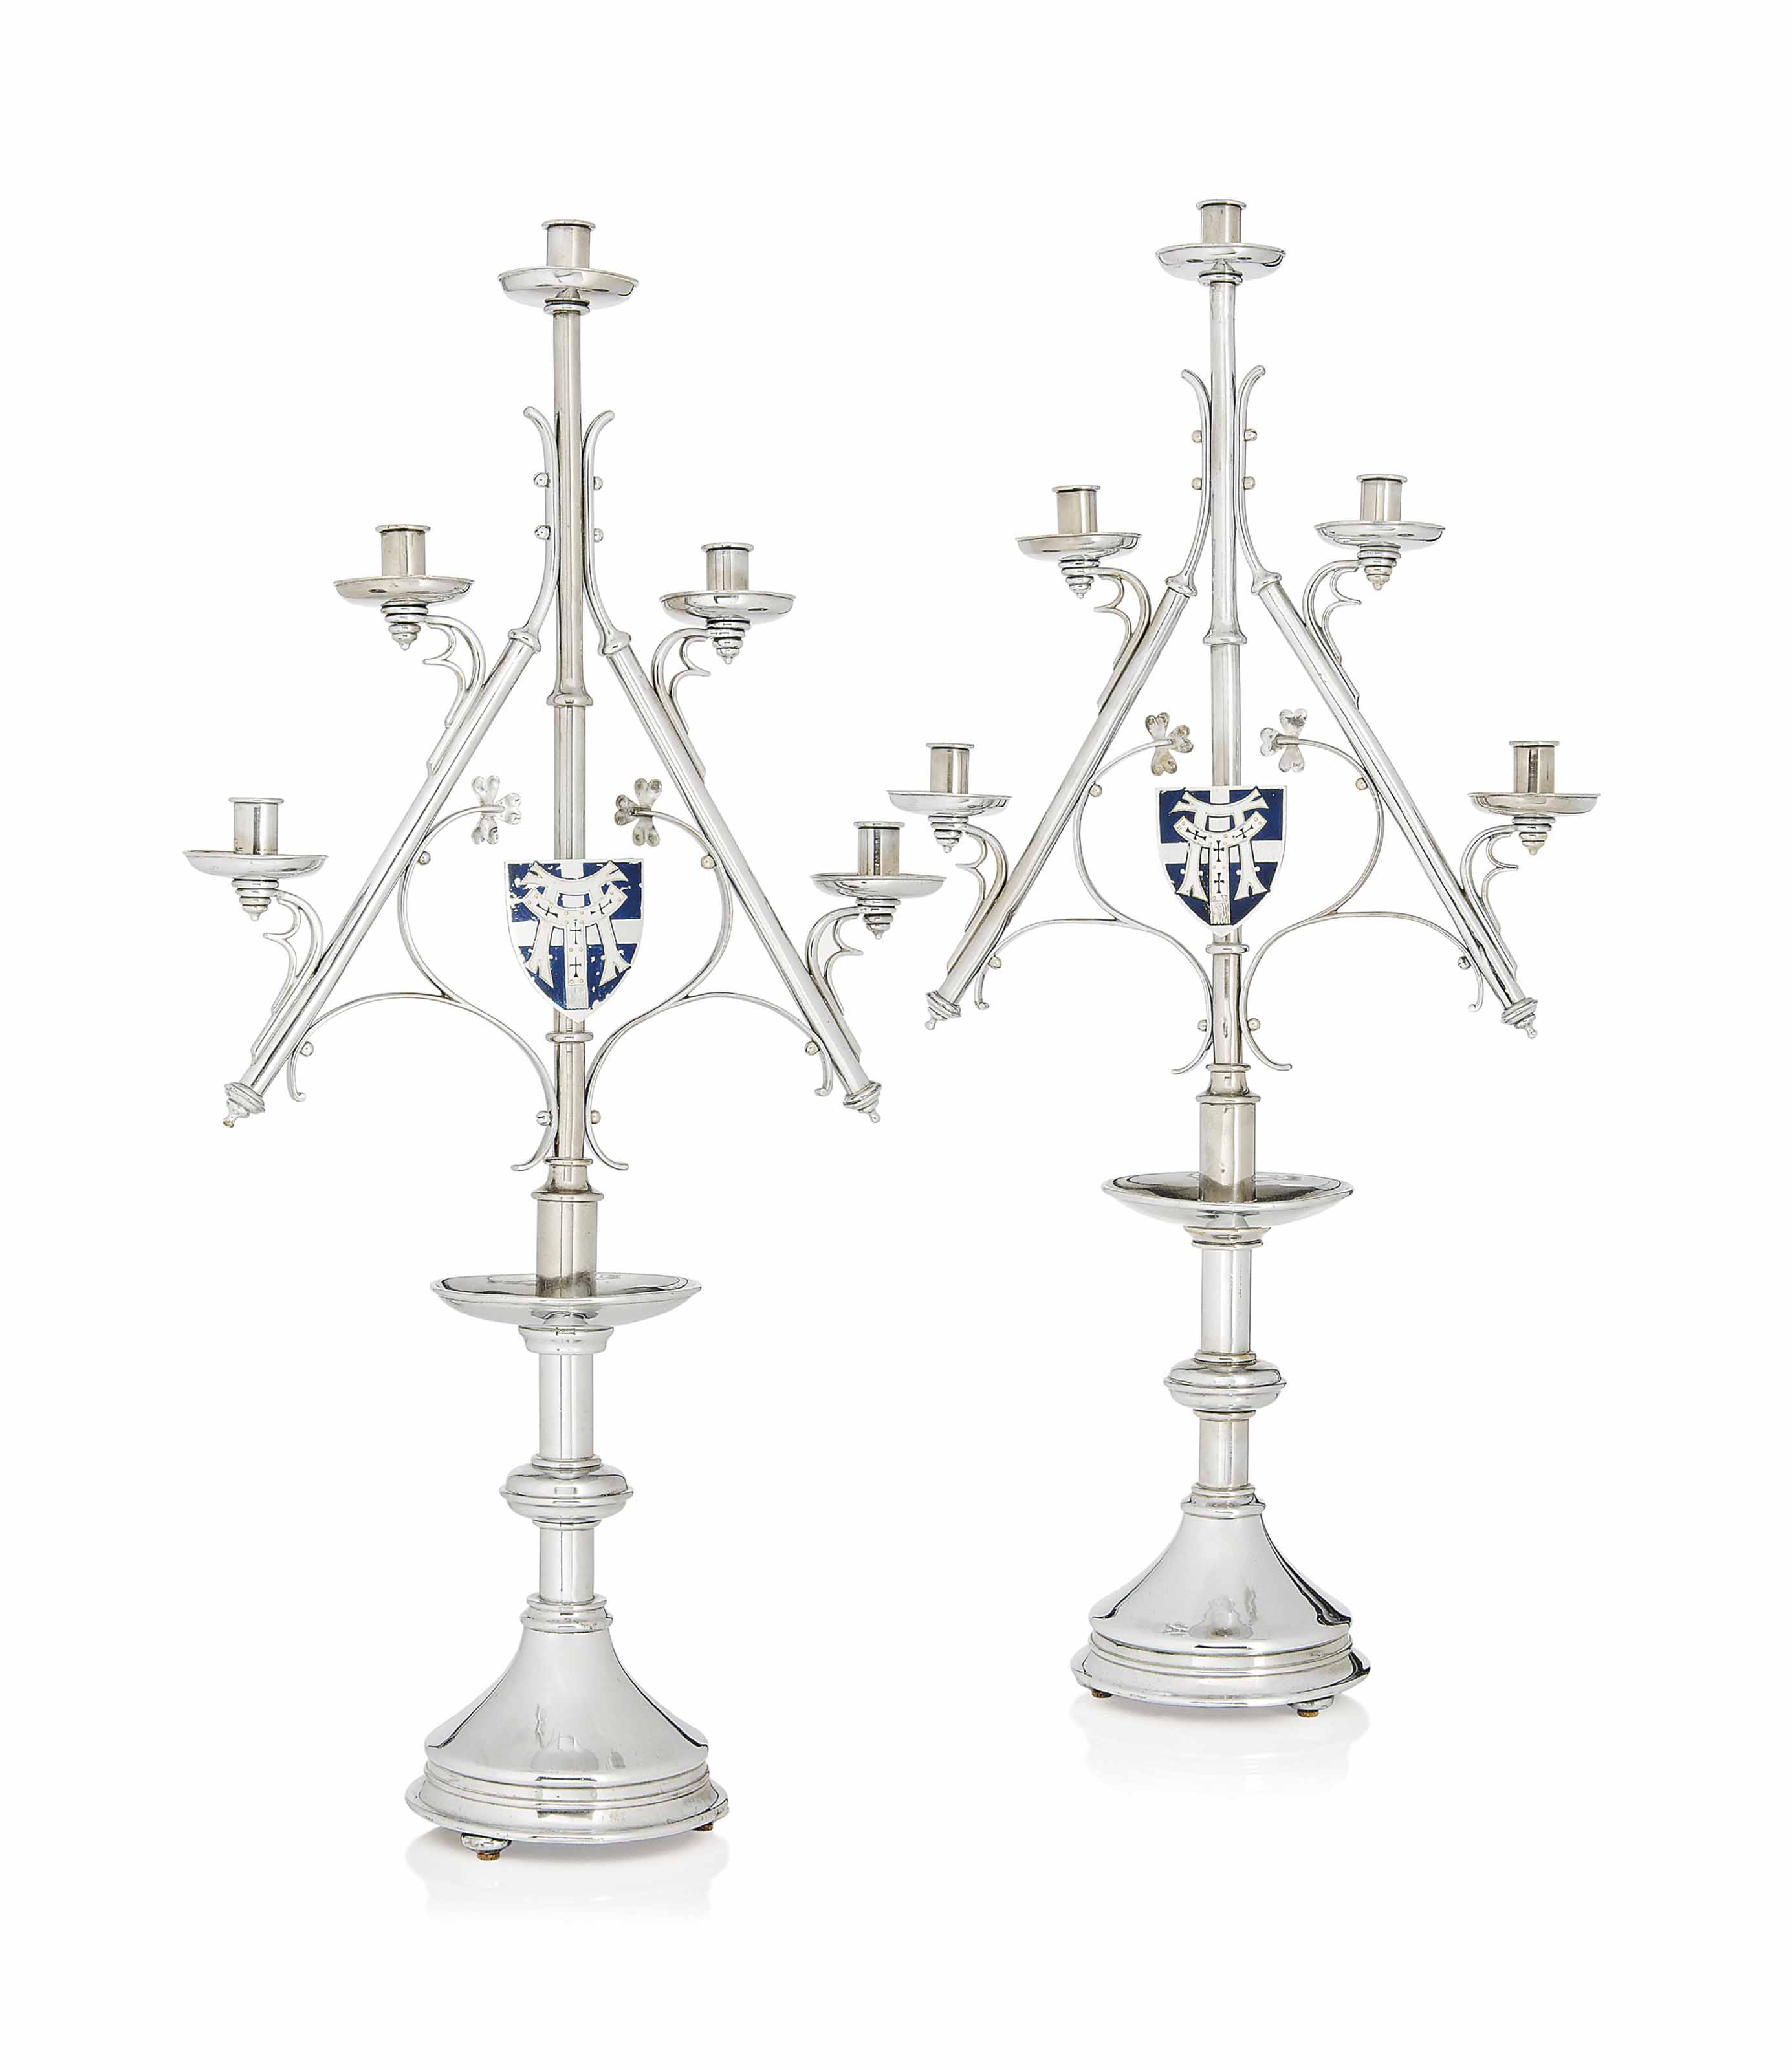 A PAIR OF A.W.N. PUGIN (1812-1852) NICKEL PLATED BRASS AND ENAMEL CANDELABRA MADE BY HARDMAN & CO